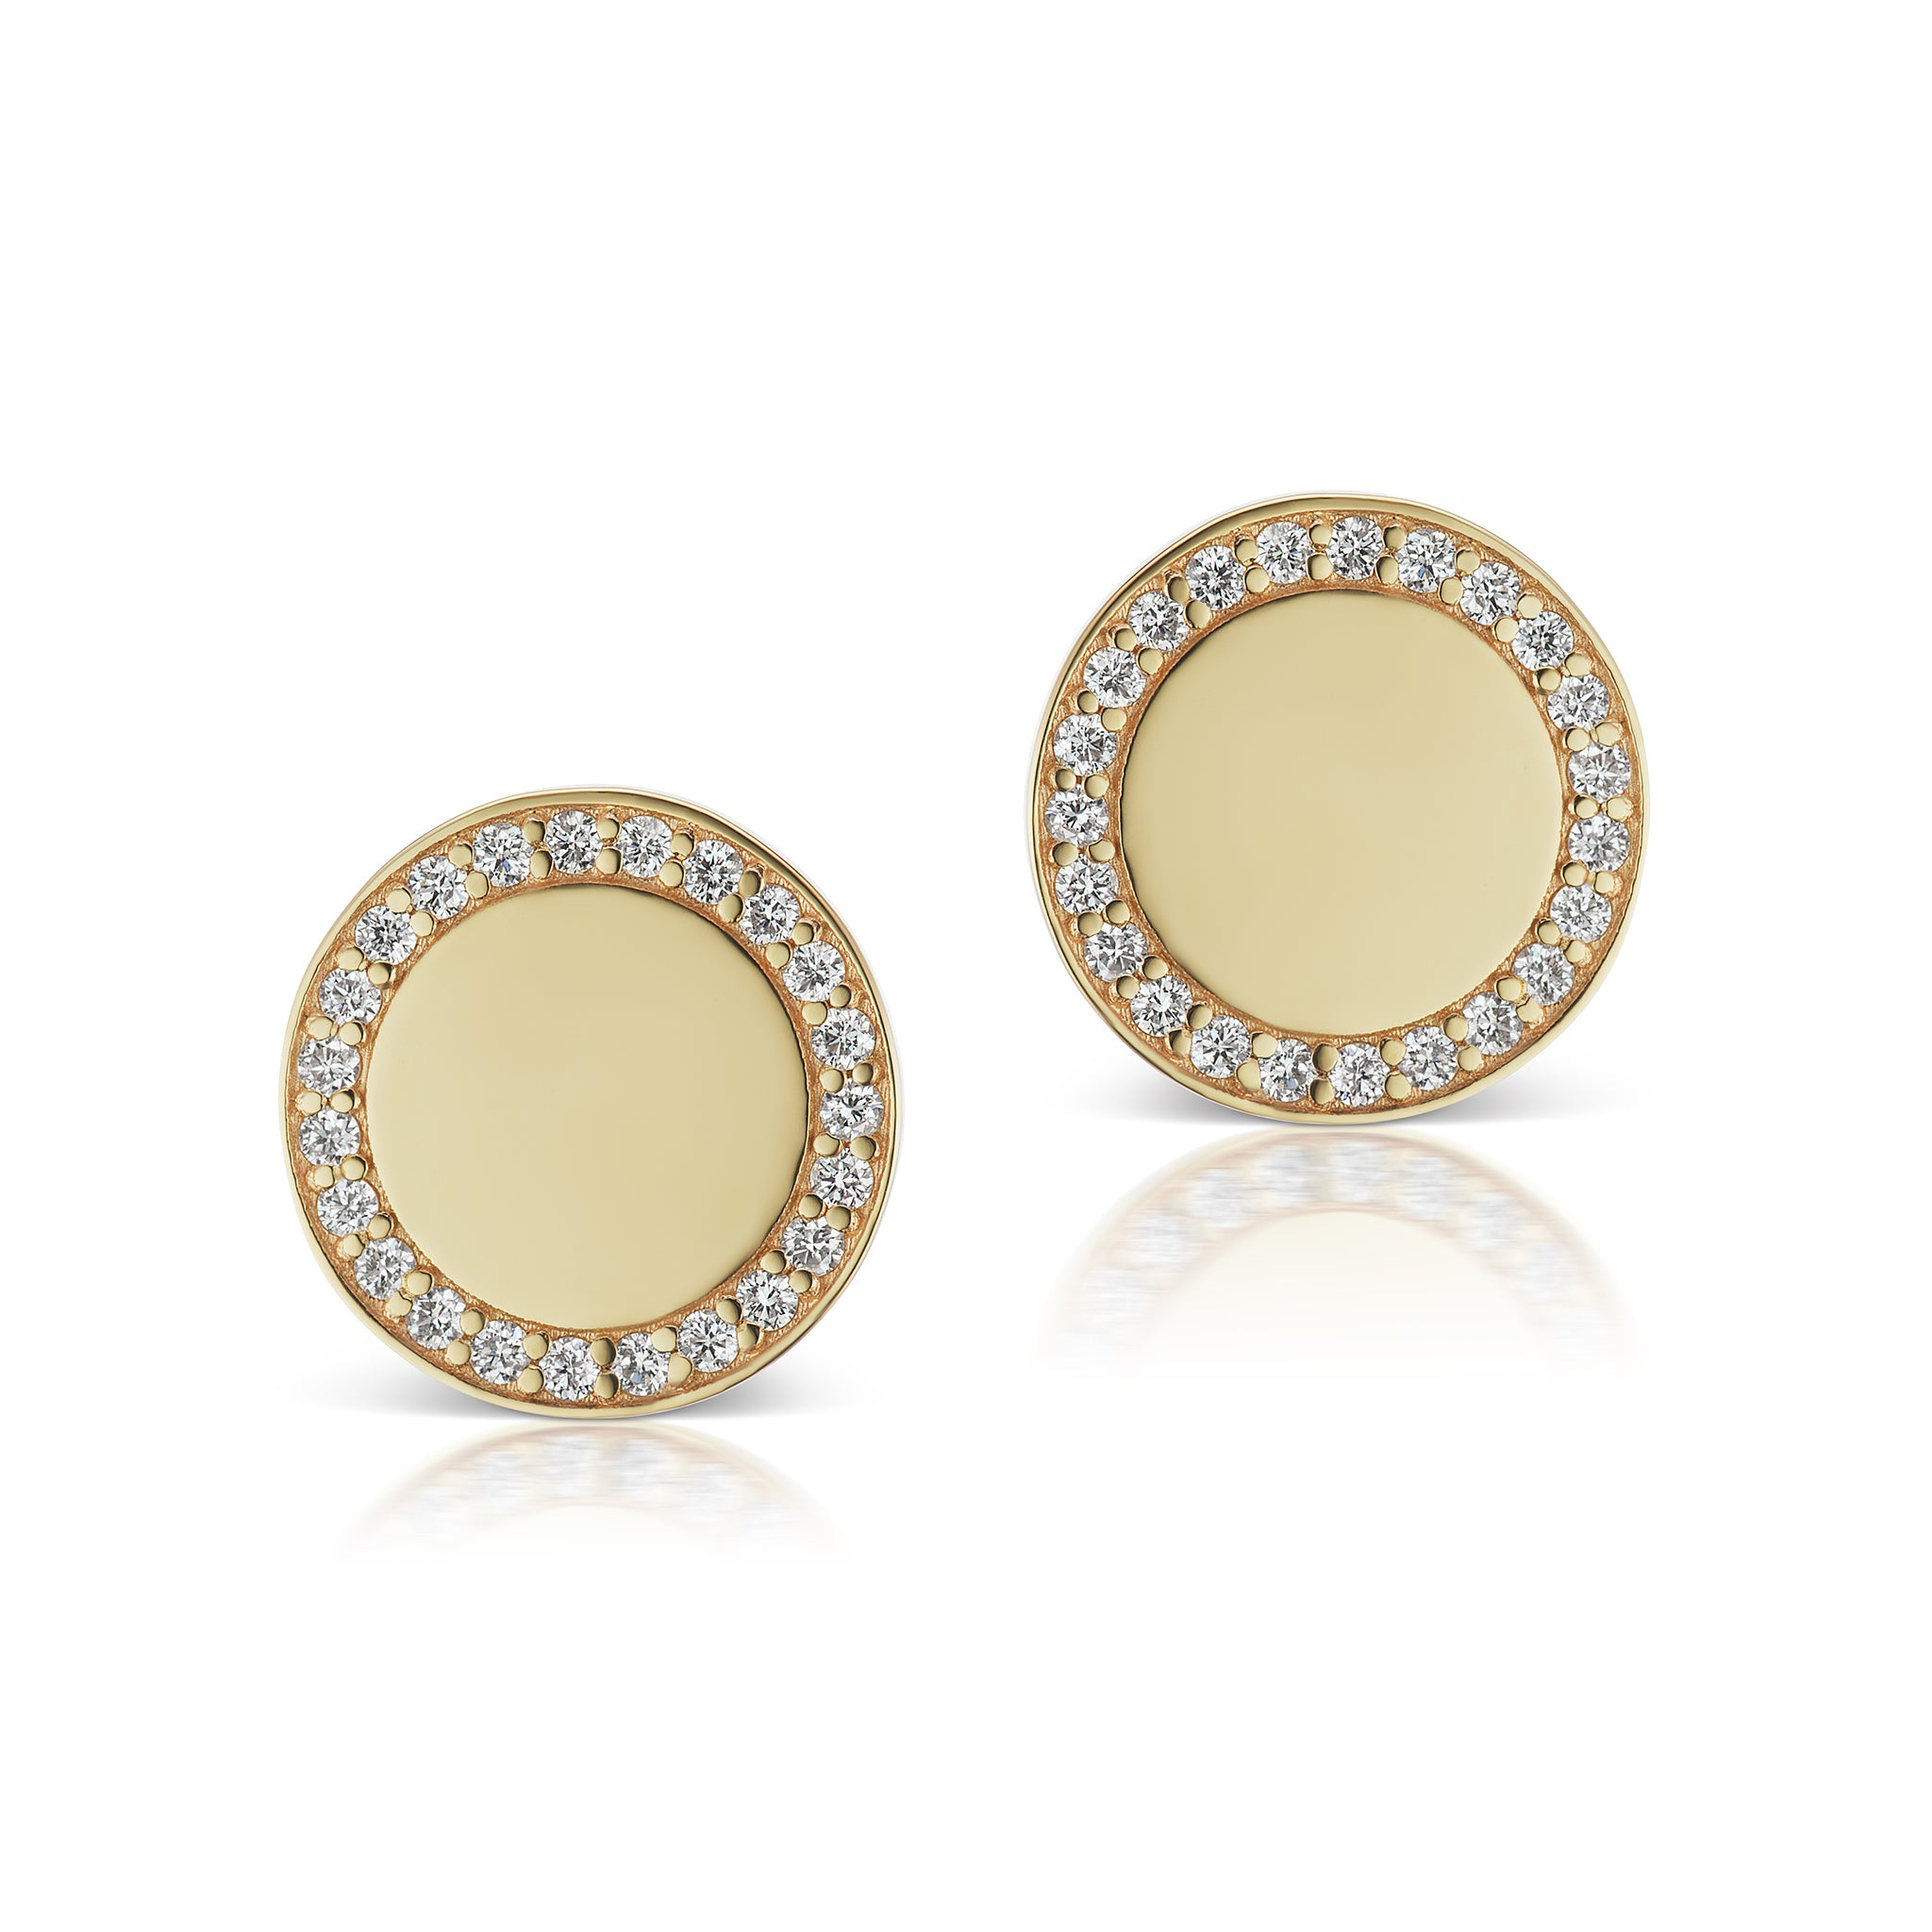 The Gold Signature Pave Stud